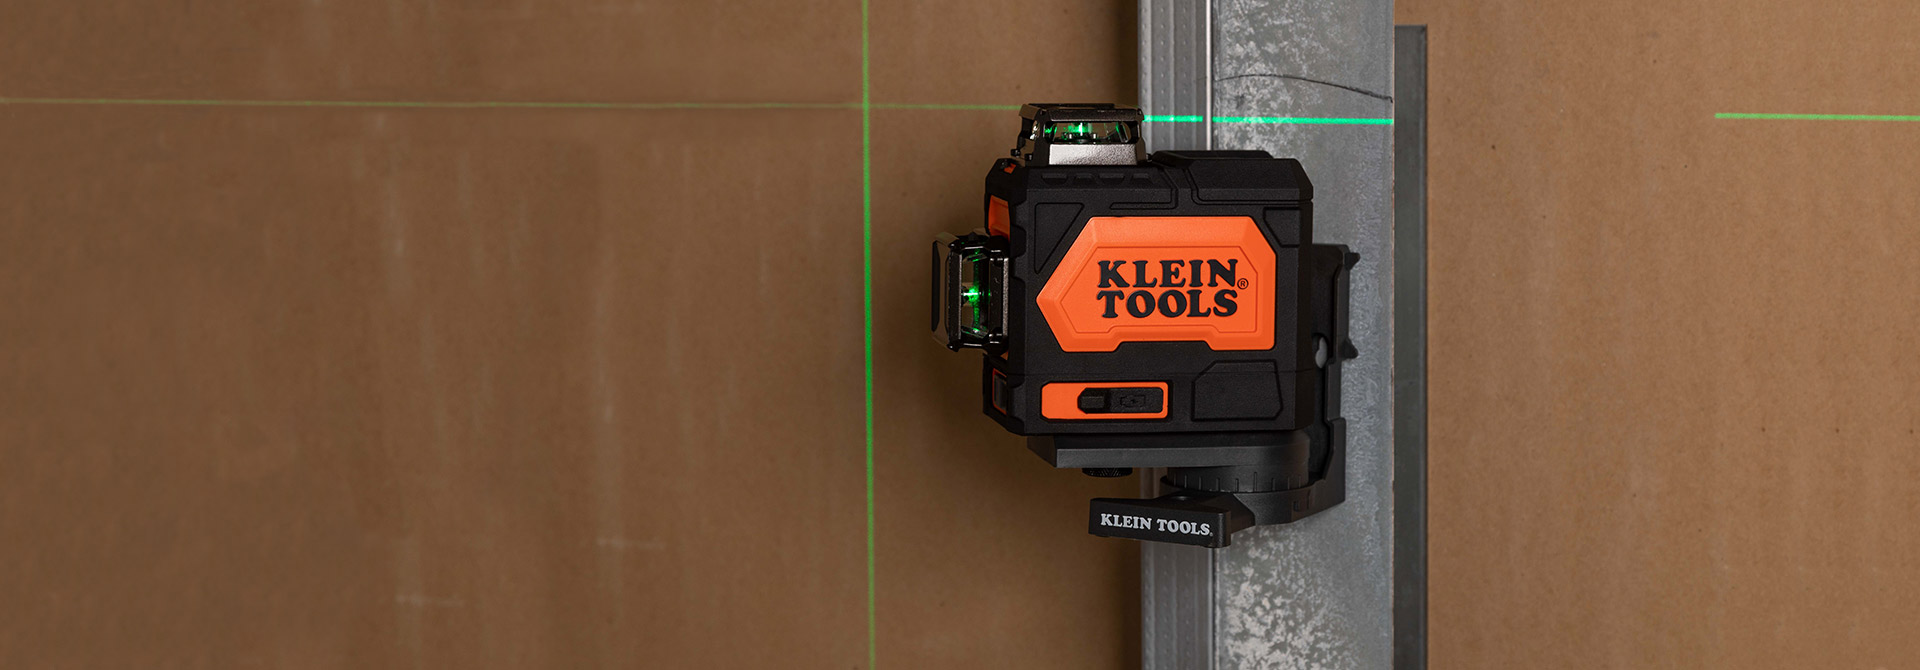 Rechargeable \r\nSelf-Leveling \r\nGreen Planar \r\nLaser Level